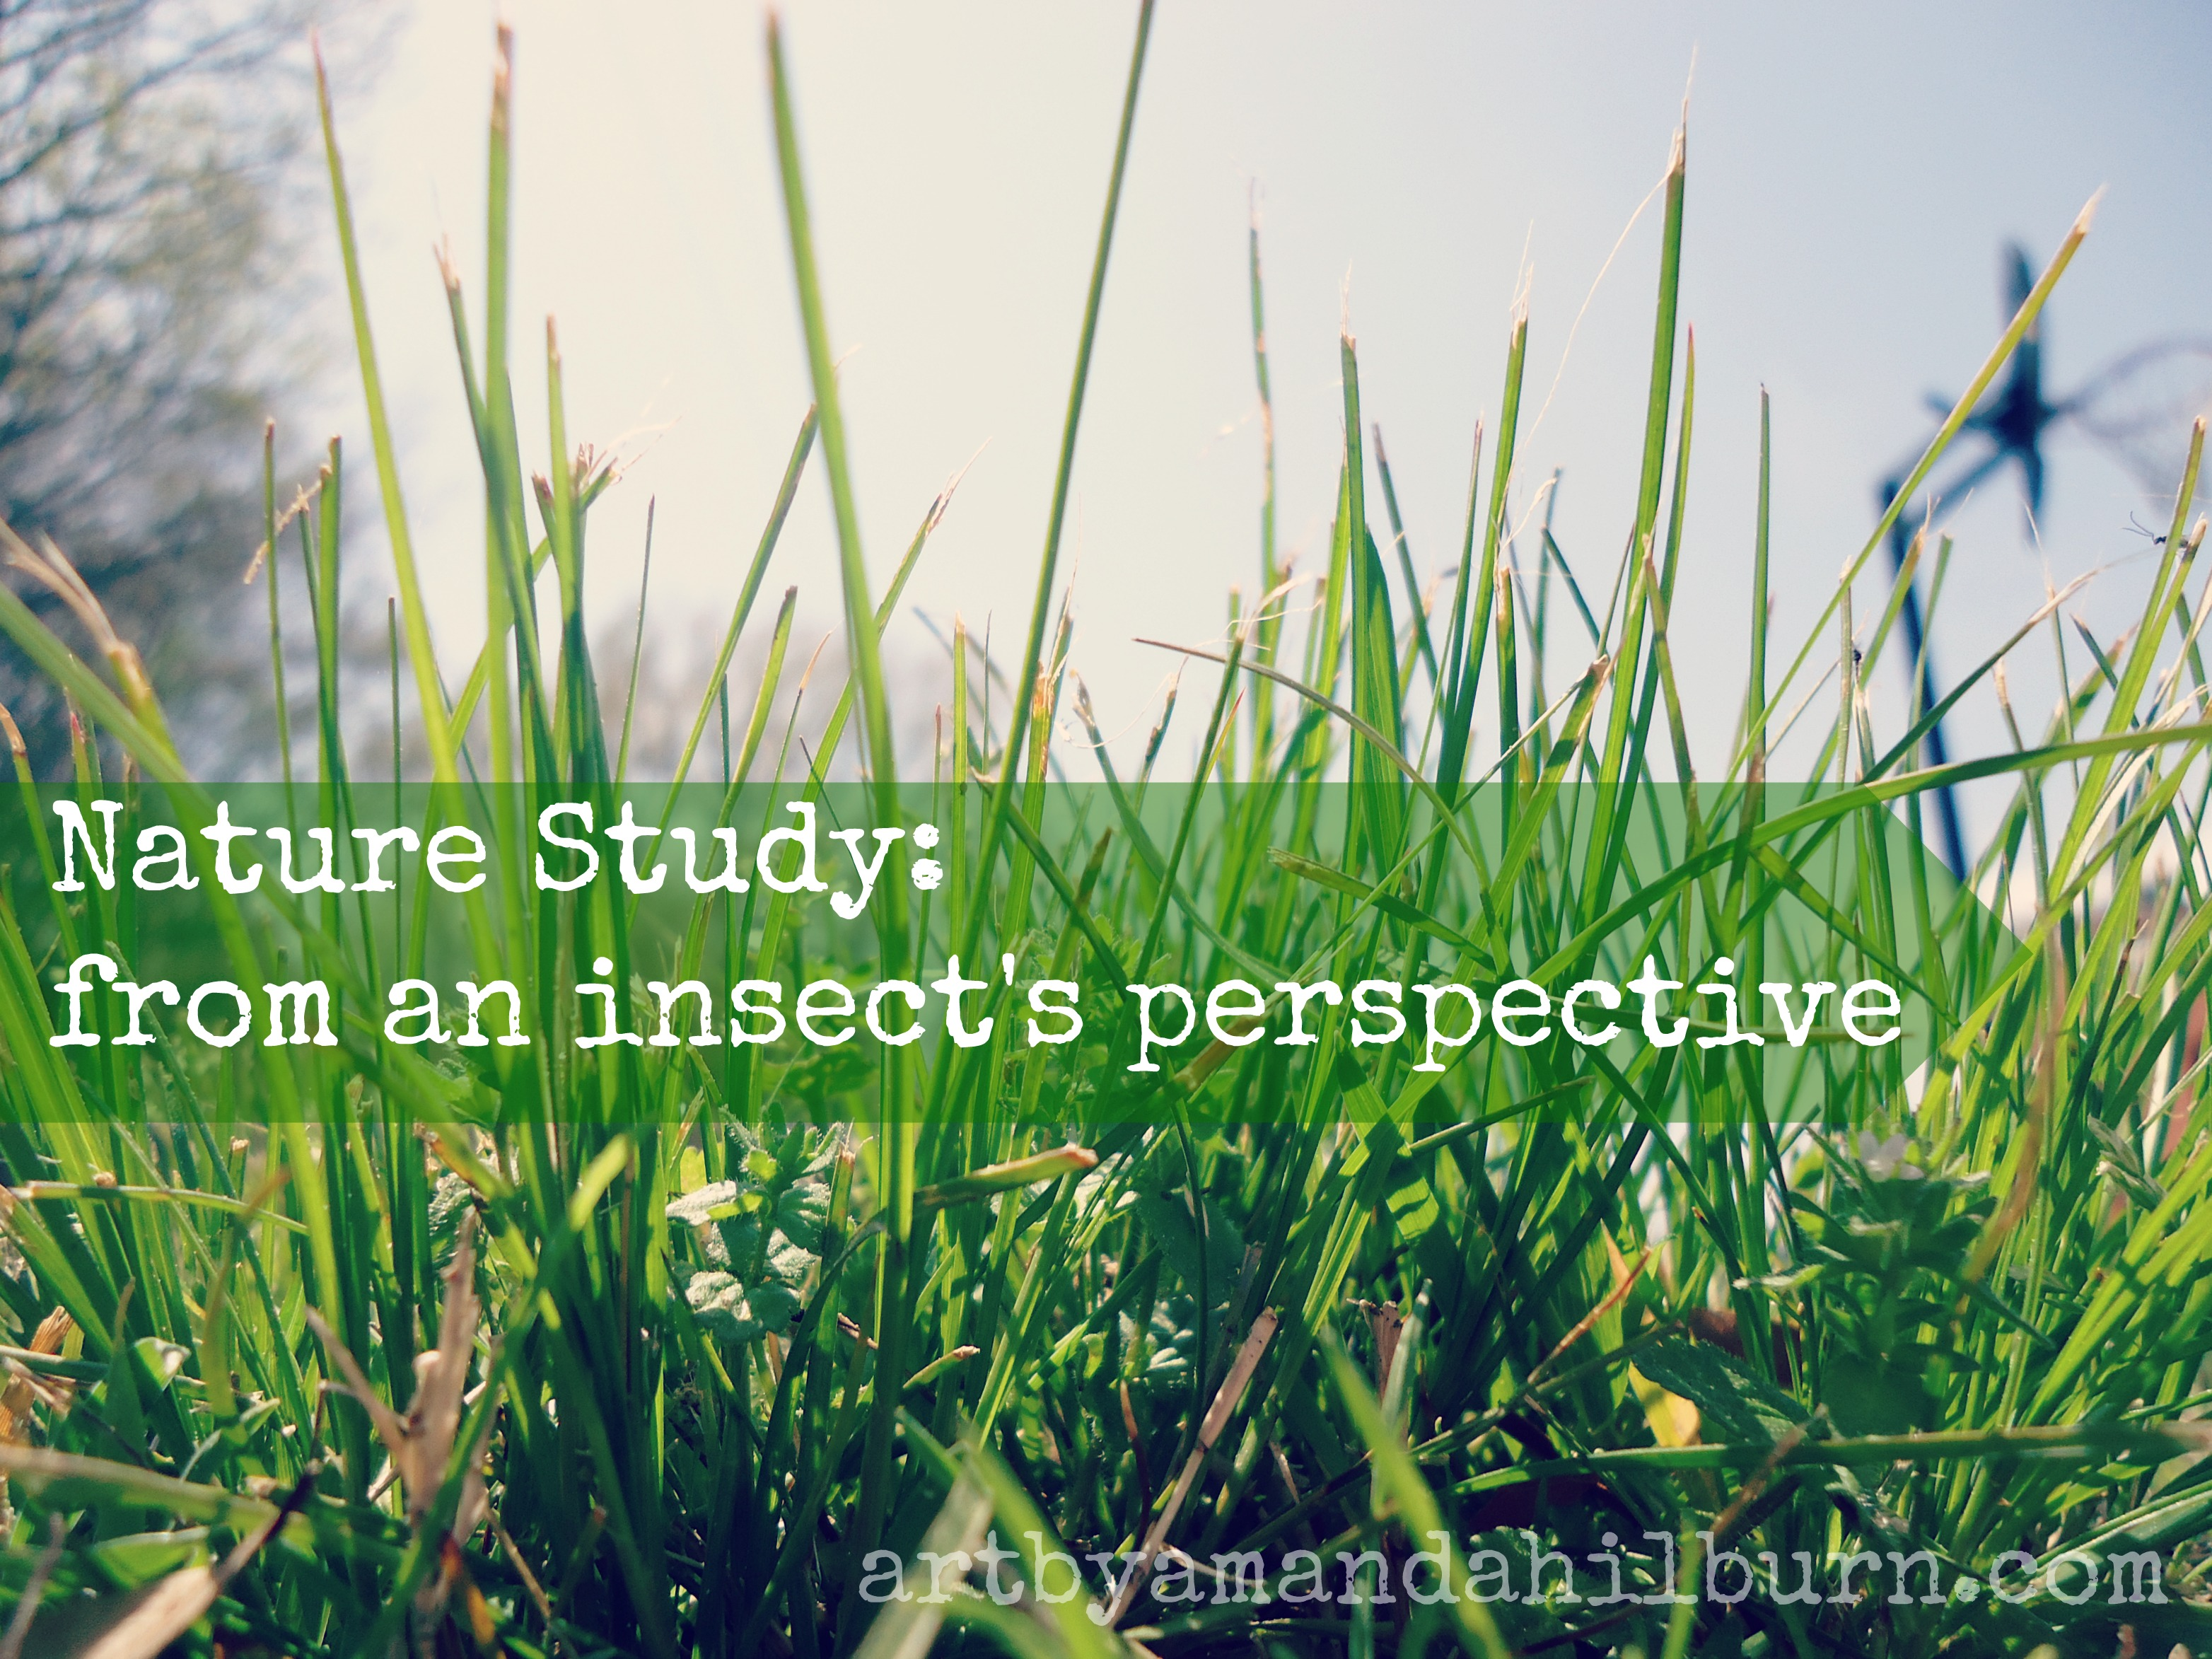 Nature Study: from an insect's perspective